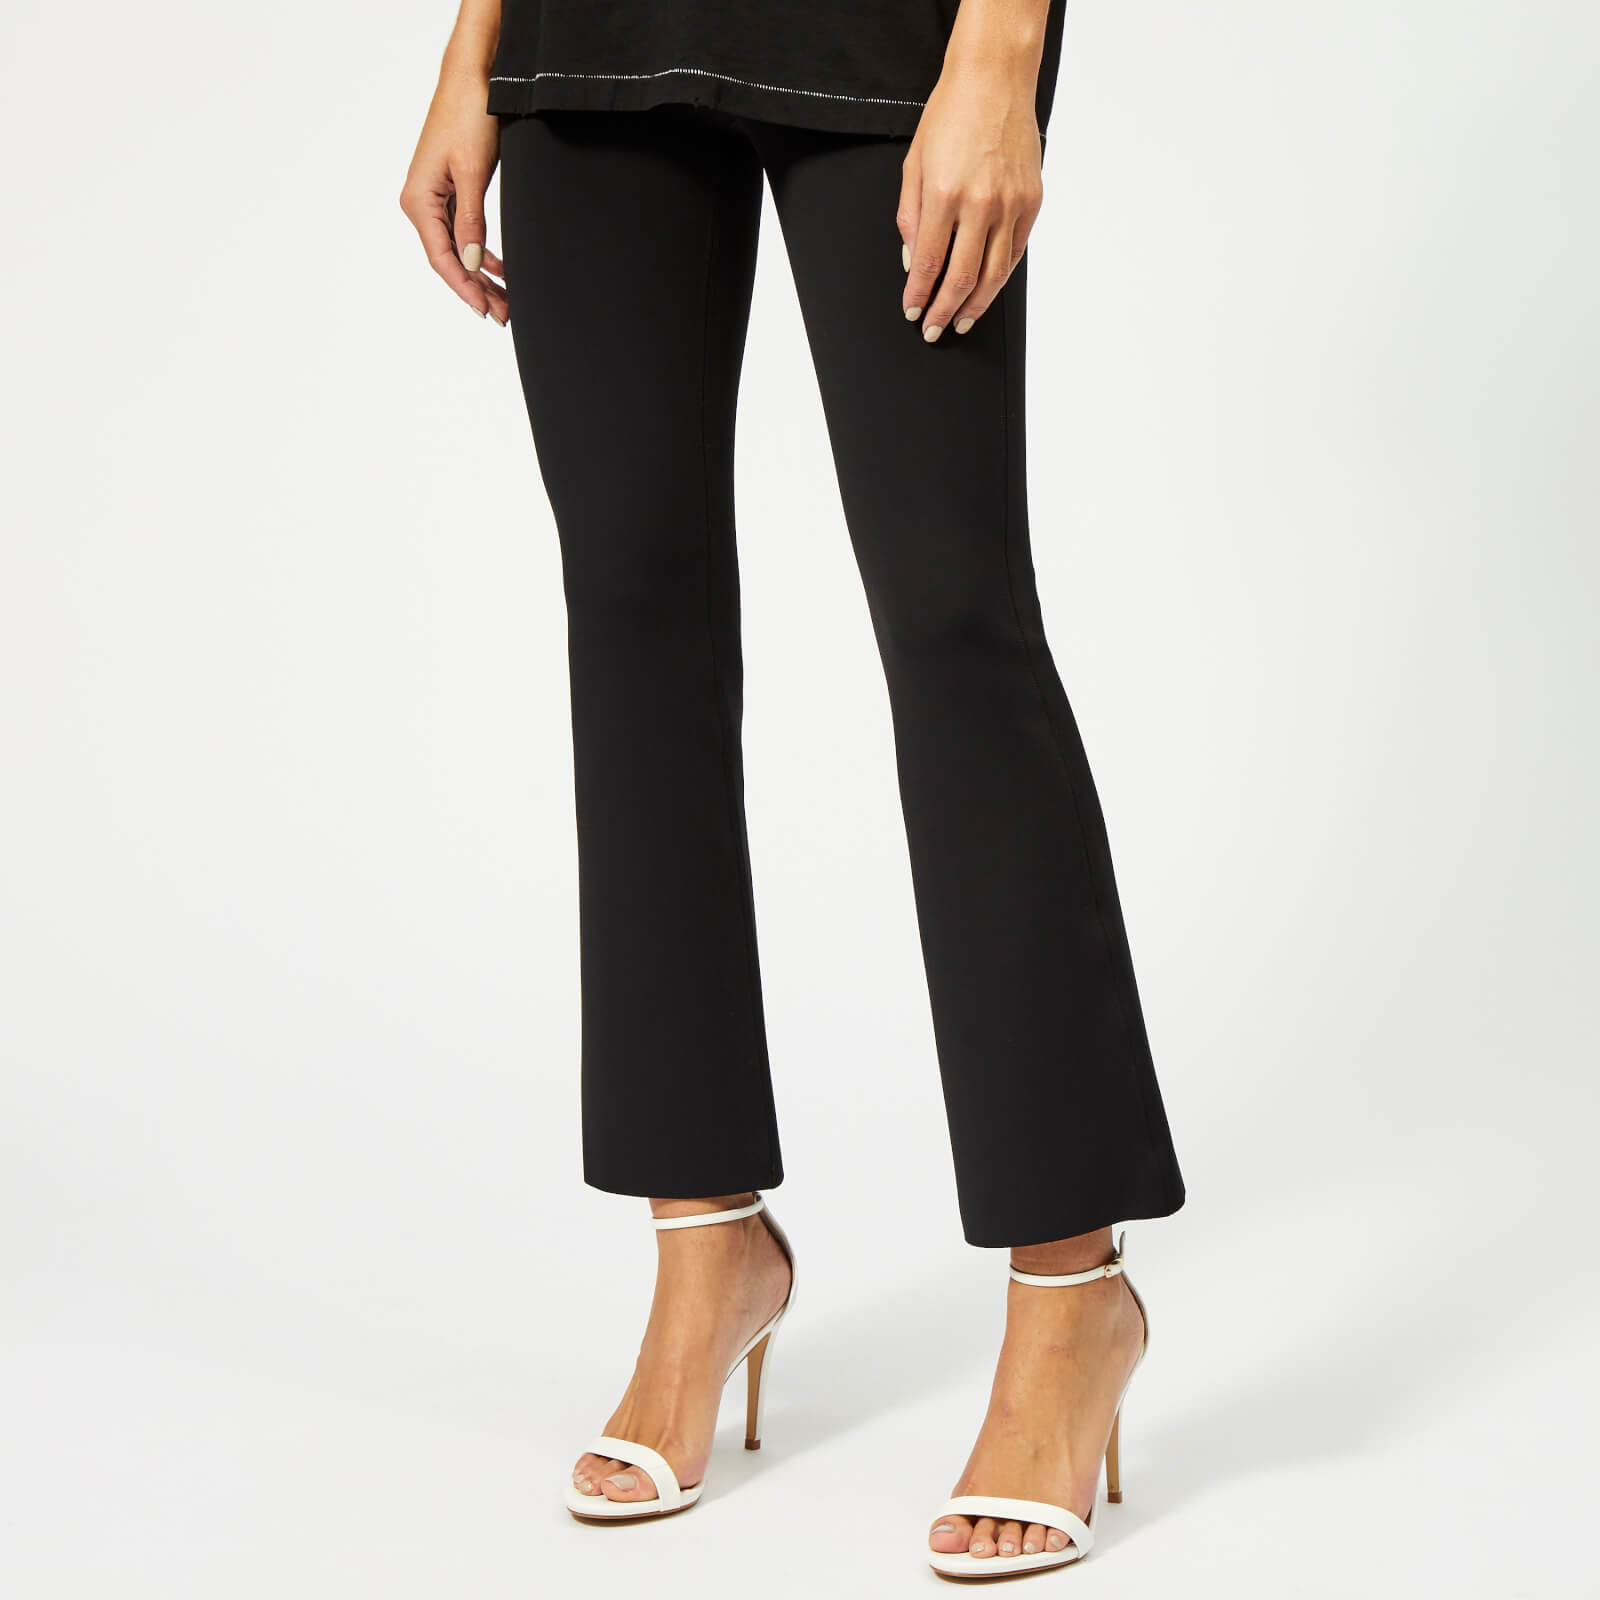 660d7f56e79471 Helmut Lang Women's Flare Scuba Pants - Black - Free UK Delivery over £50